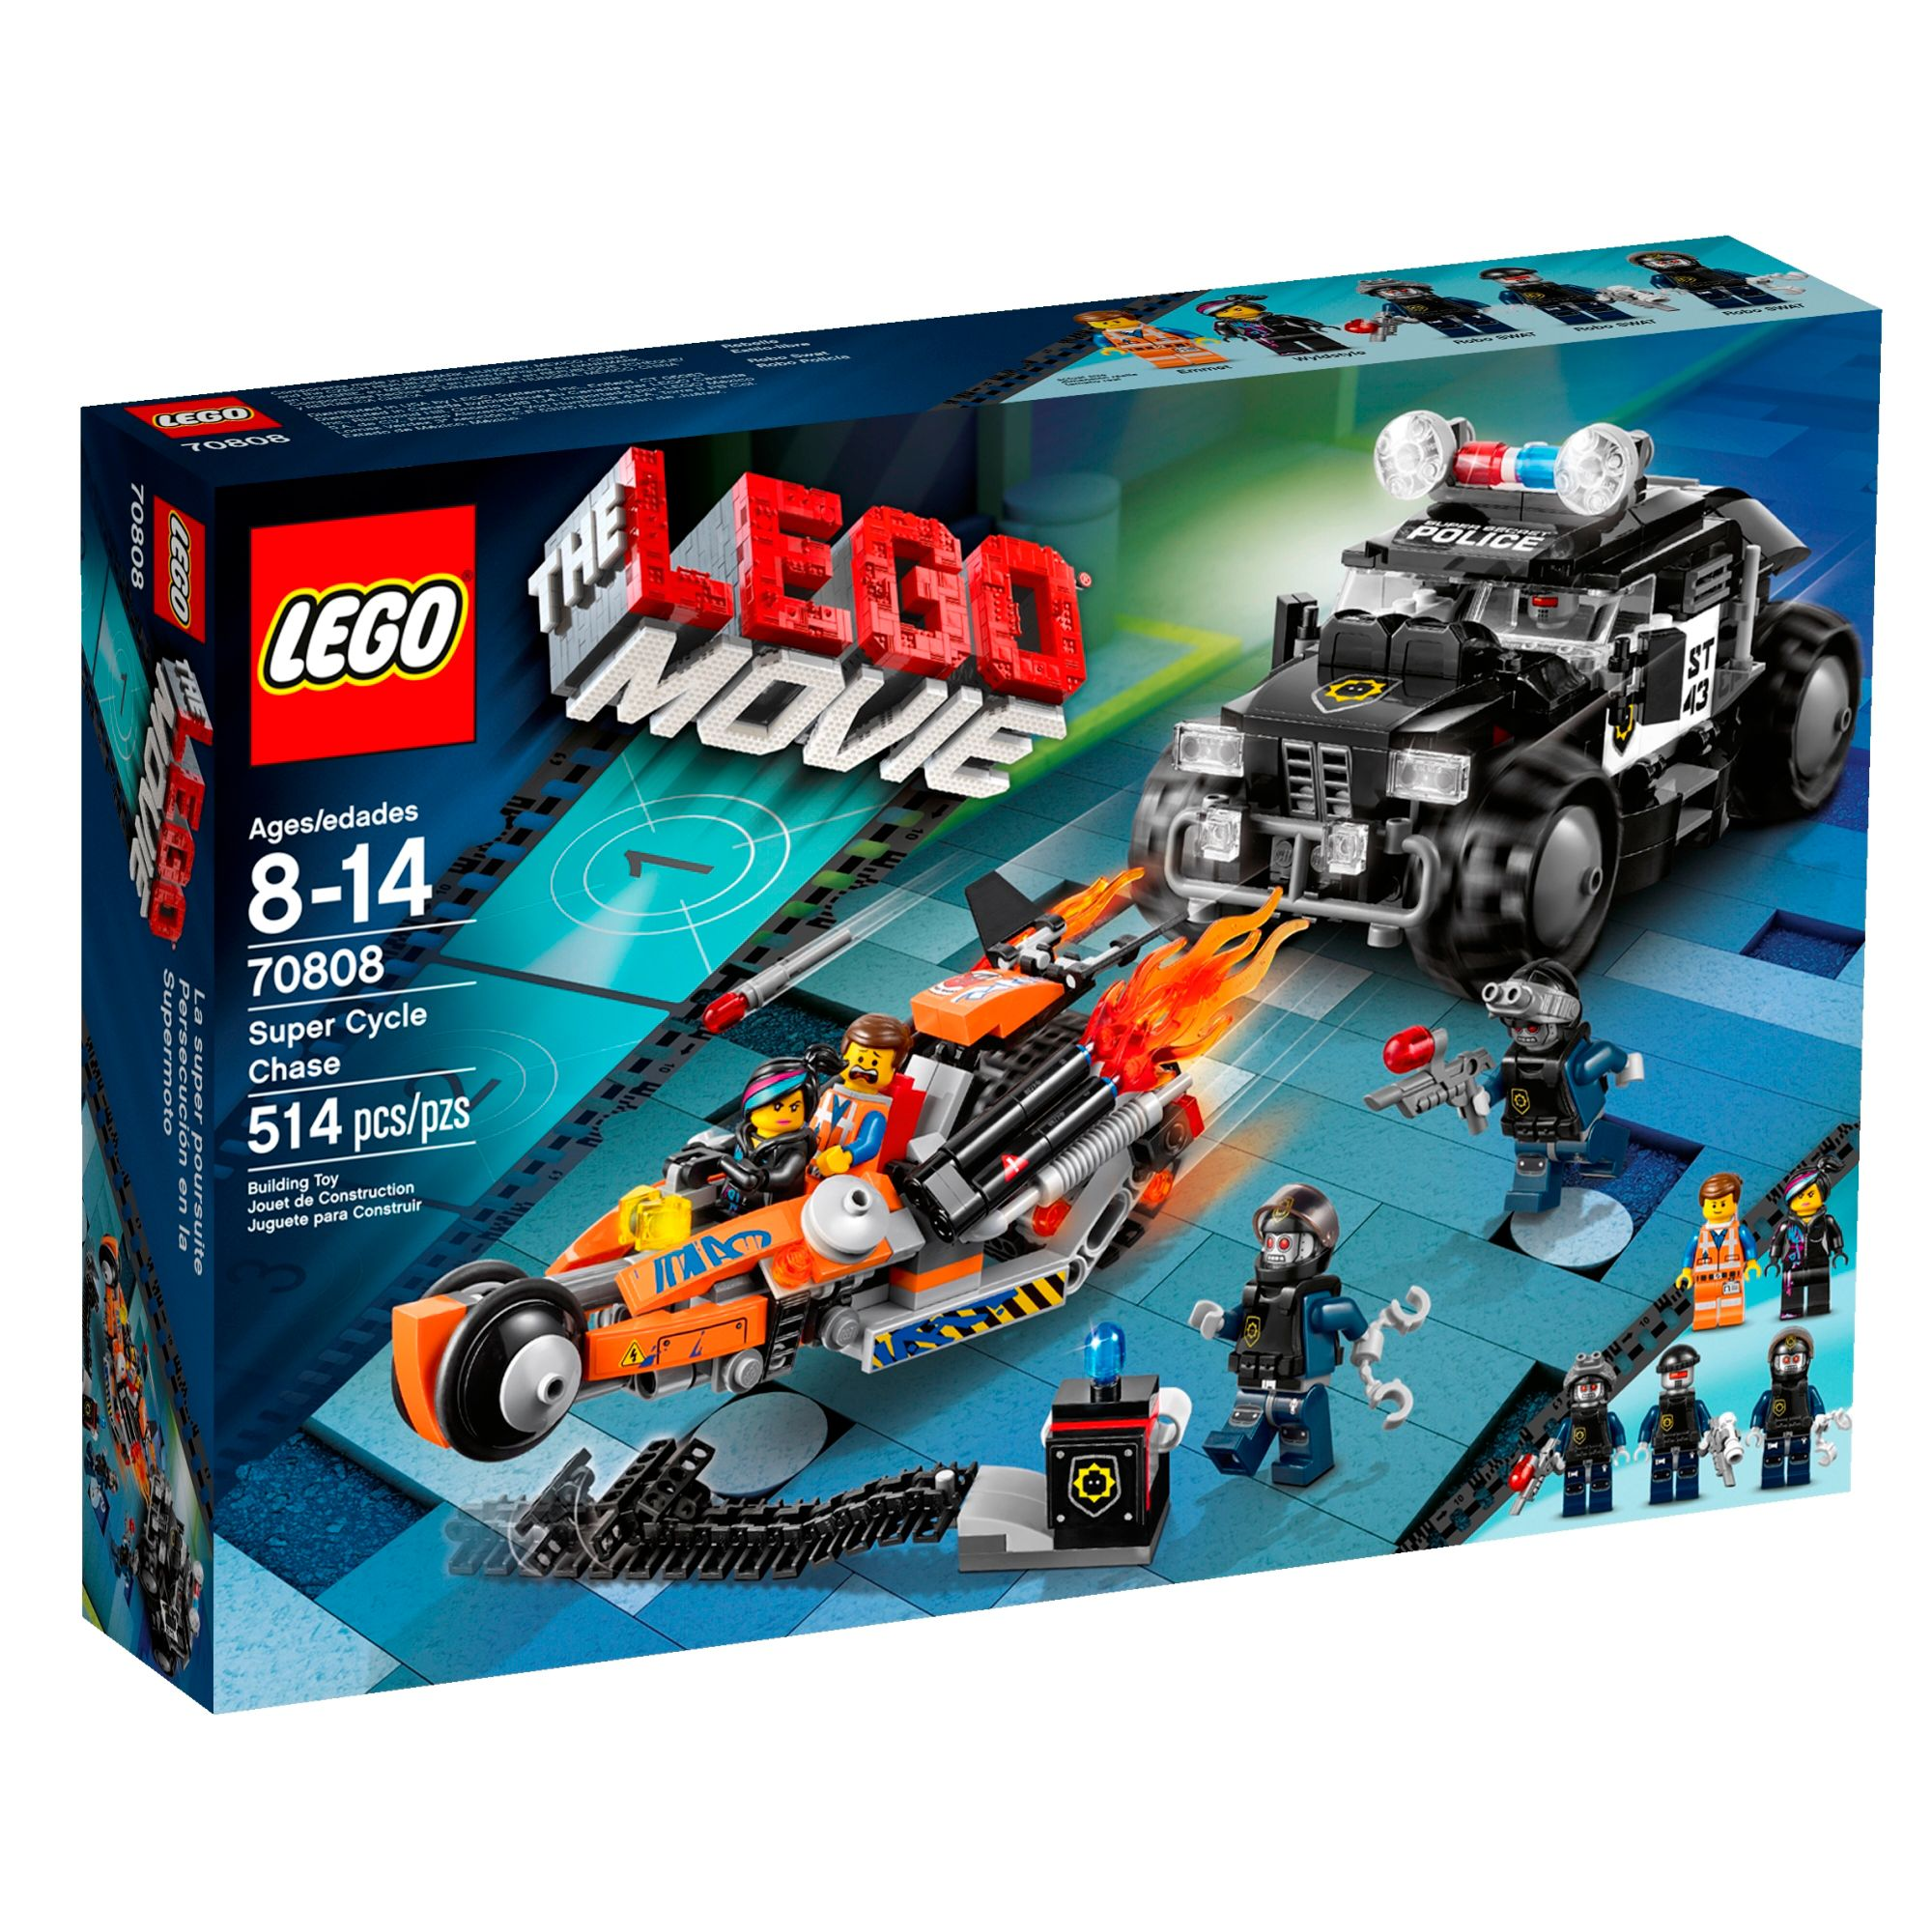 70808 Super Cycle chase